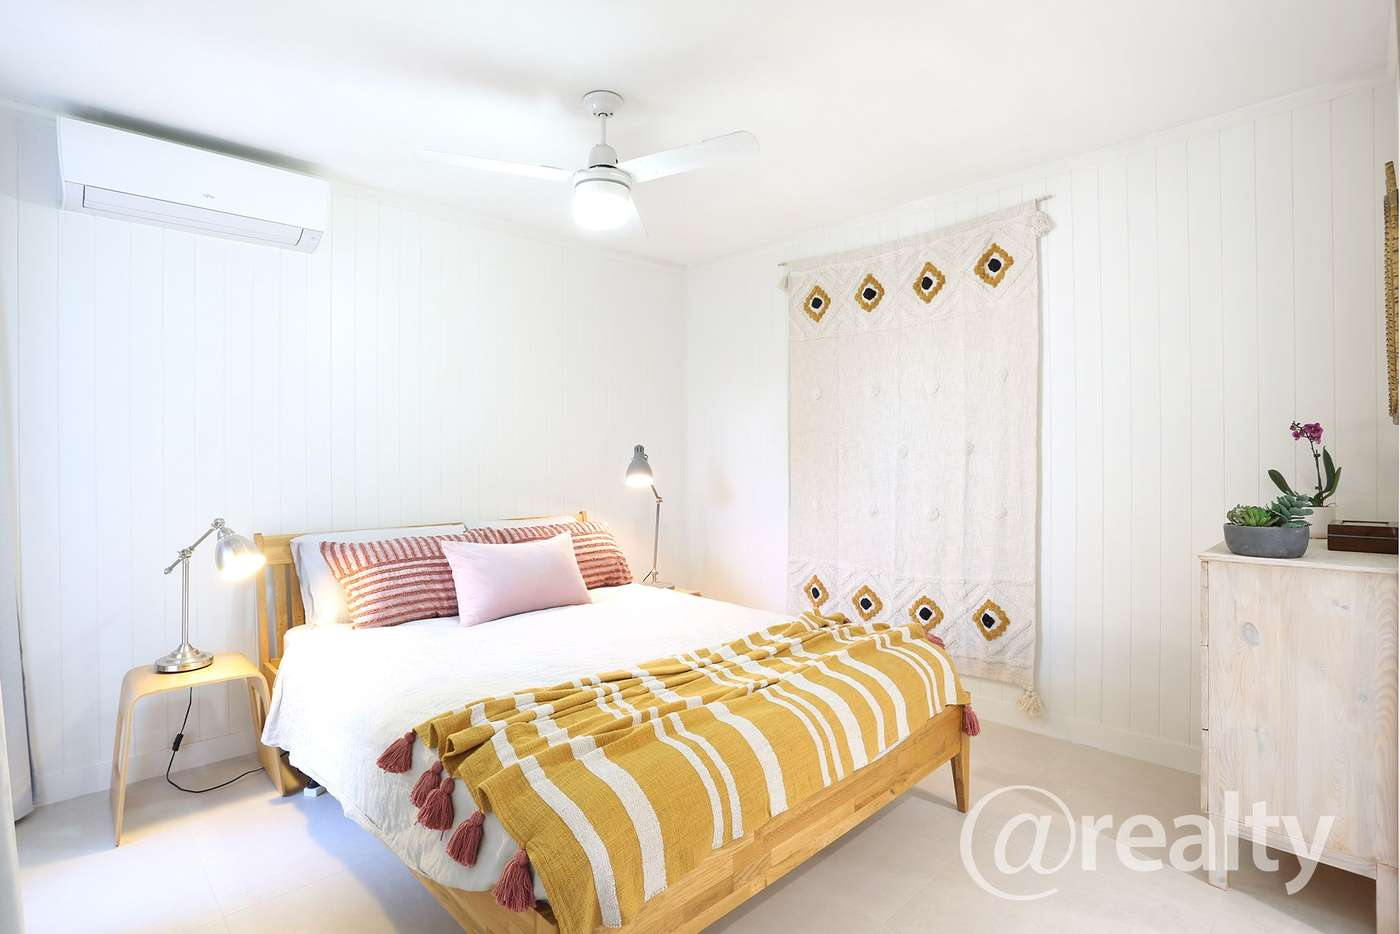 Fifth view of Homely house listing, 9 Miskin Street, Nerang QLD 4211